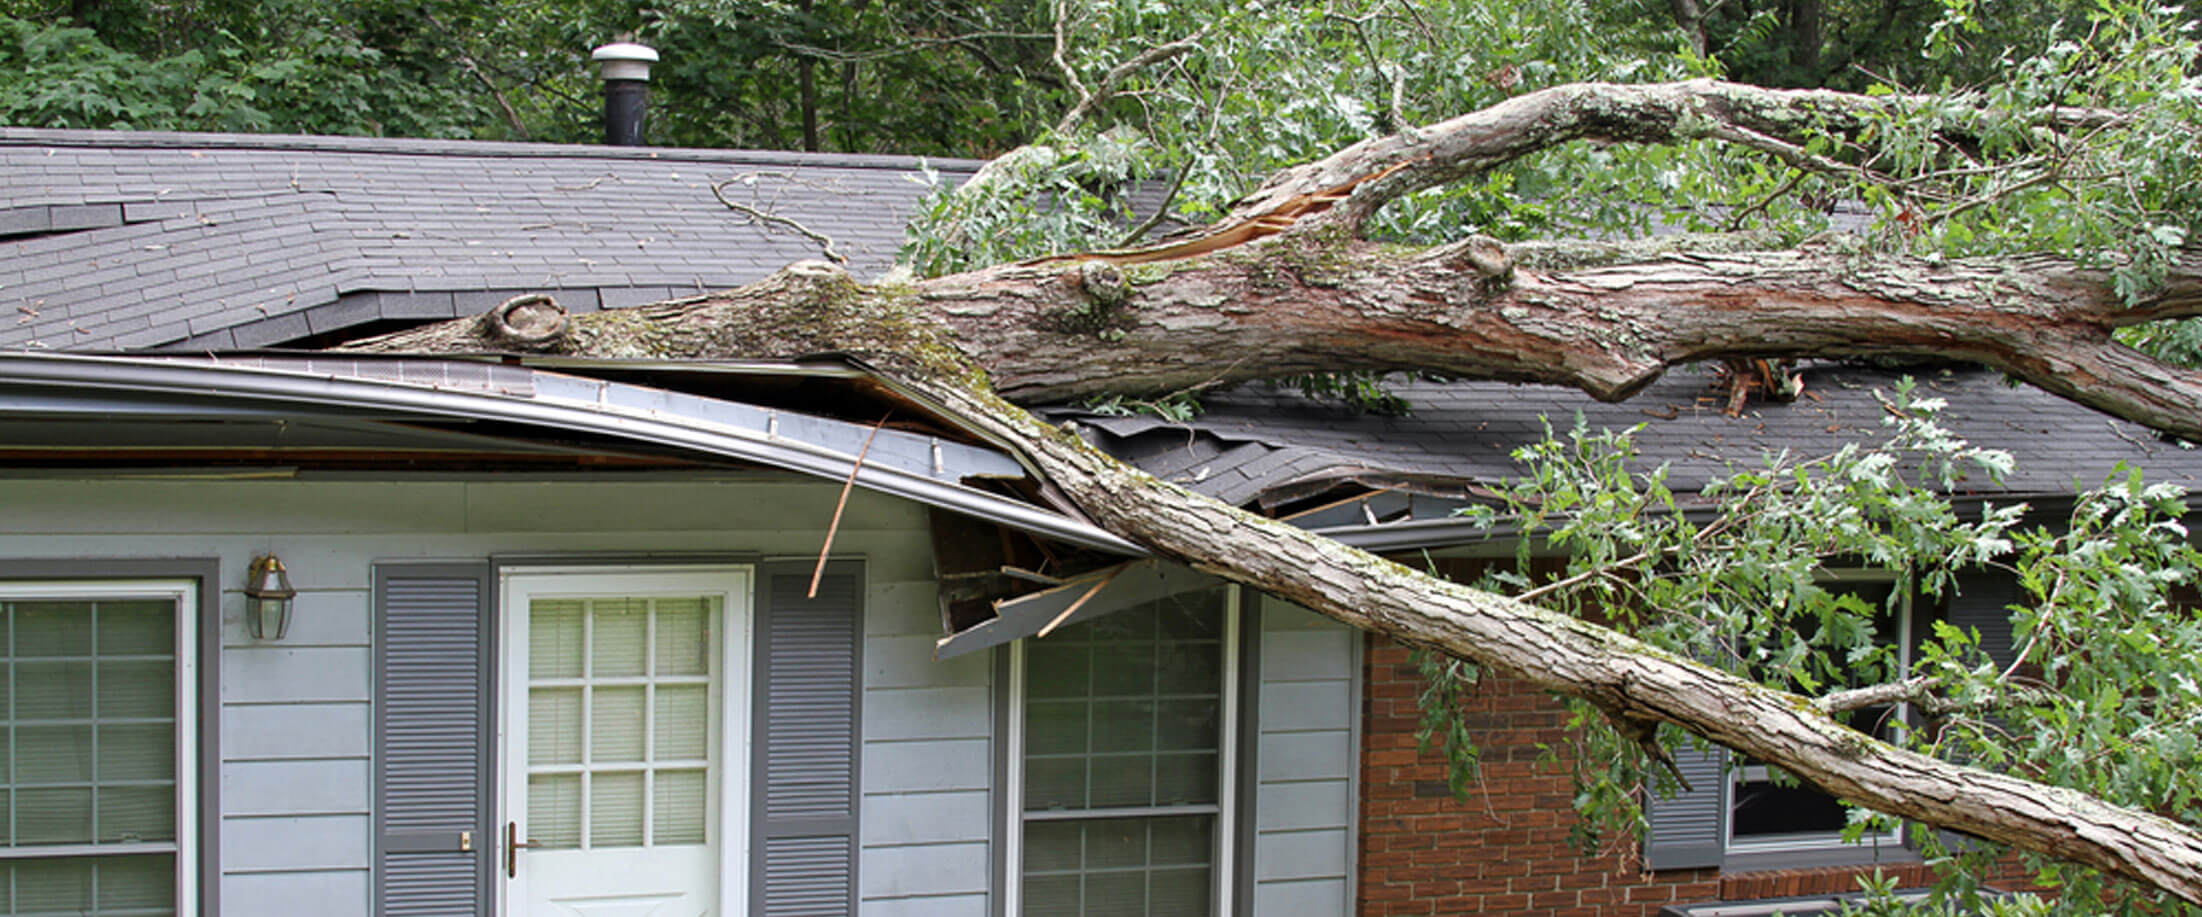 Roof of a home with a large tree laying on it